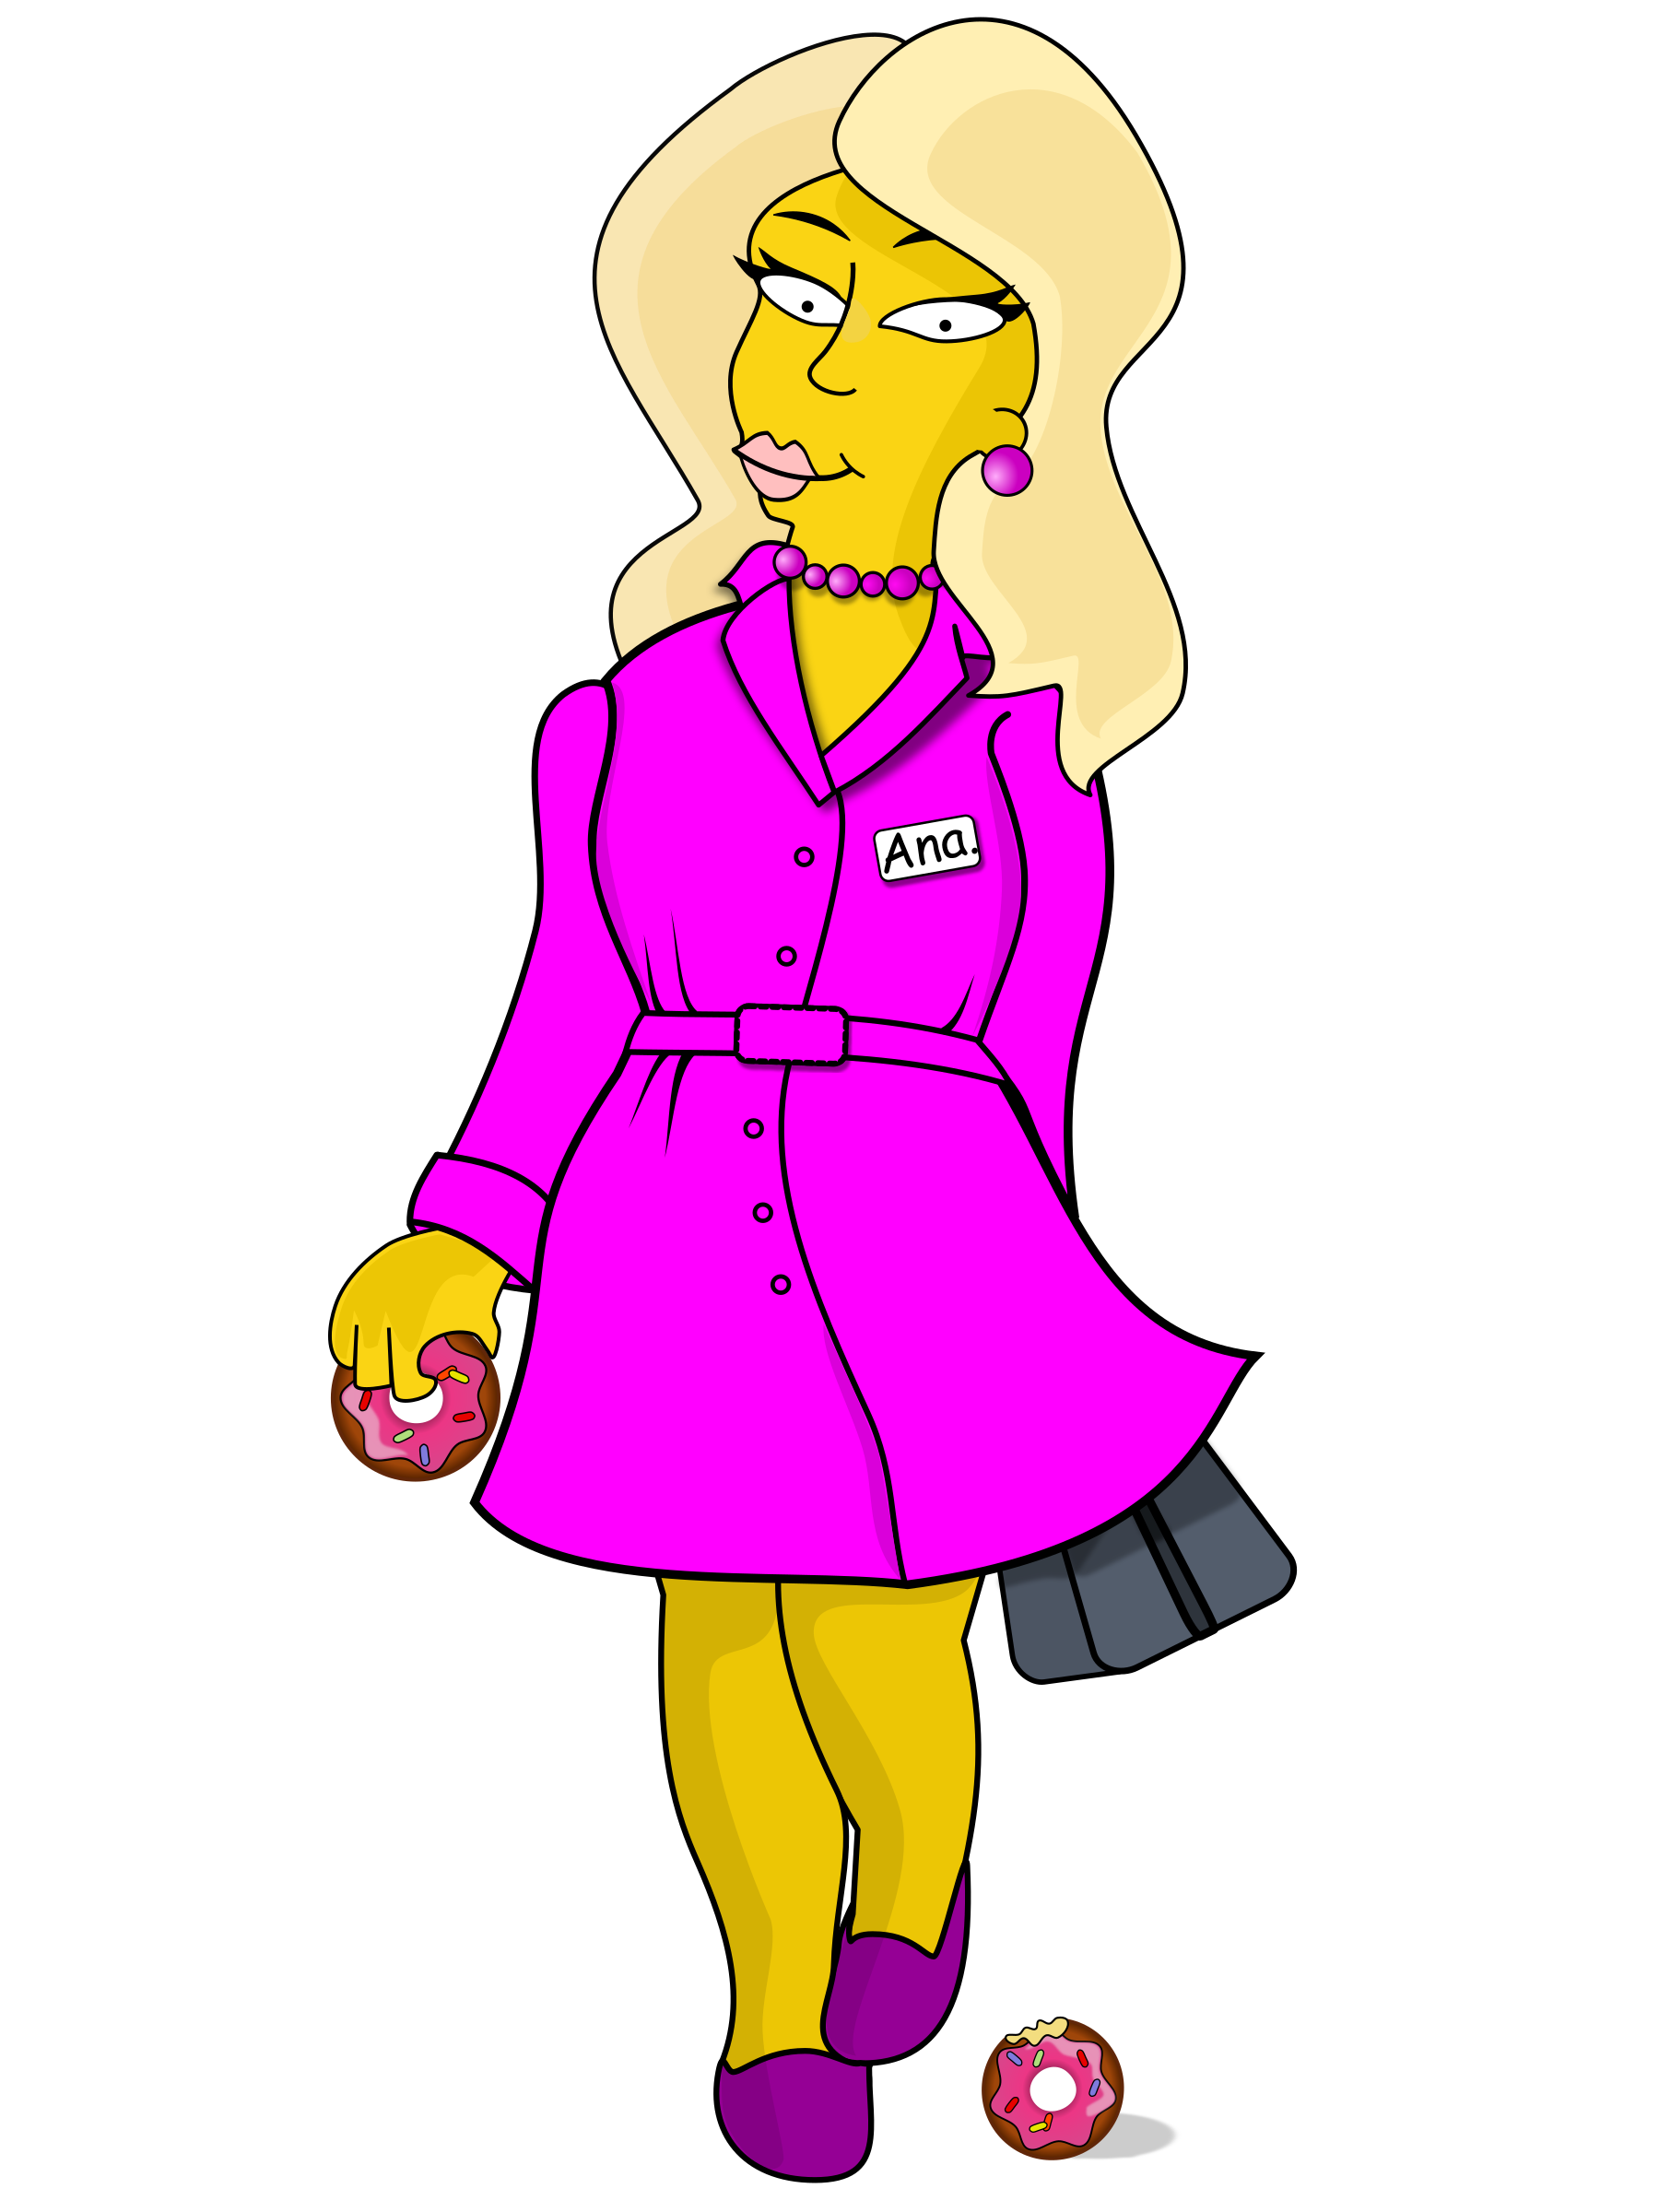 Ana Simpsons Character by Ana.